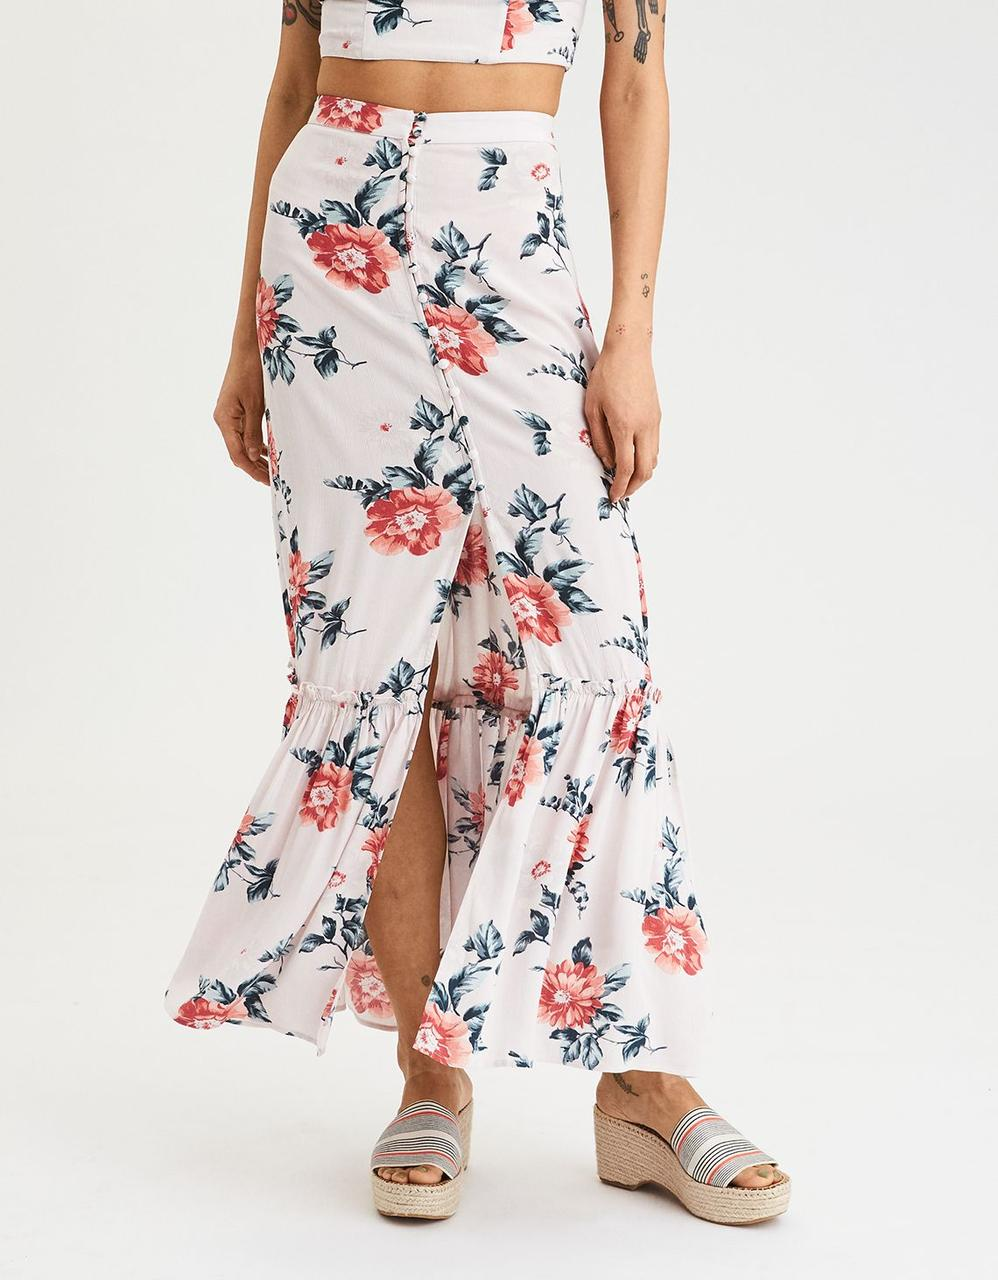 9d2e57c49a American Eagle Skirts, AE Button Down Maxi Skirt for Women at Aeo.in